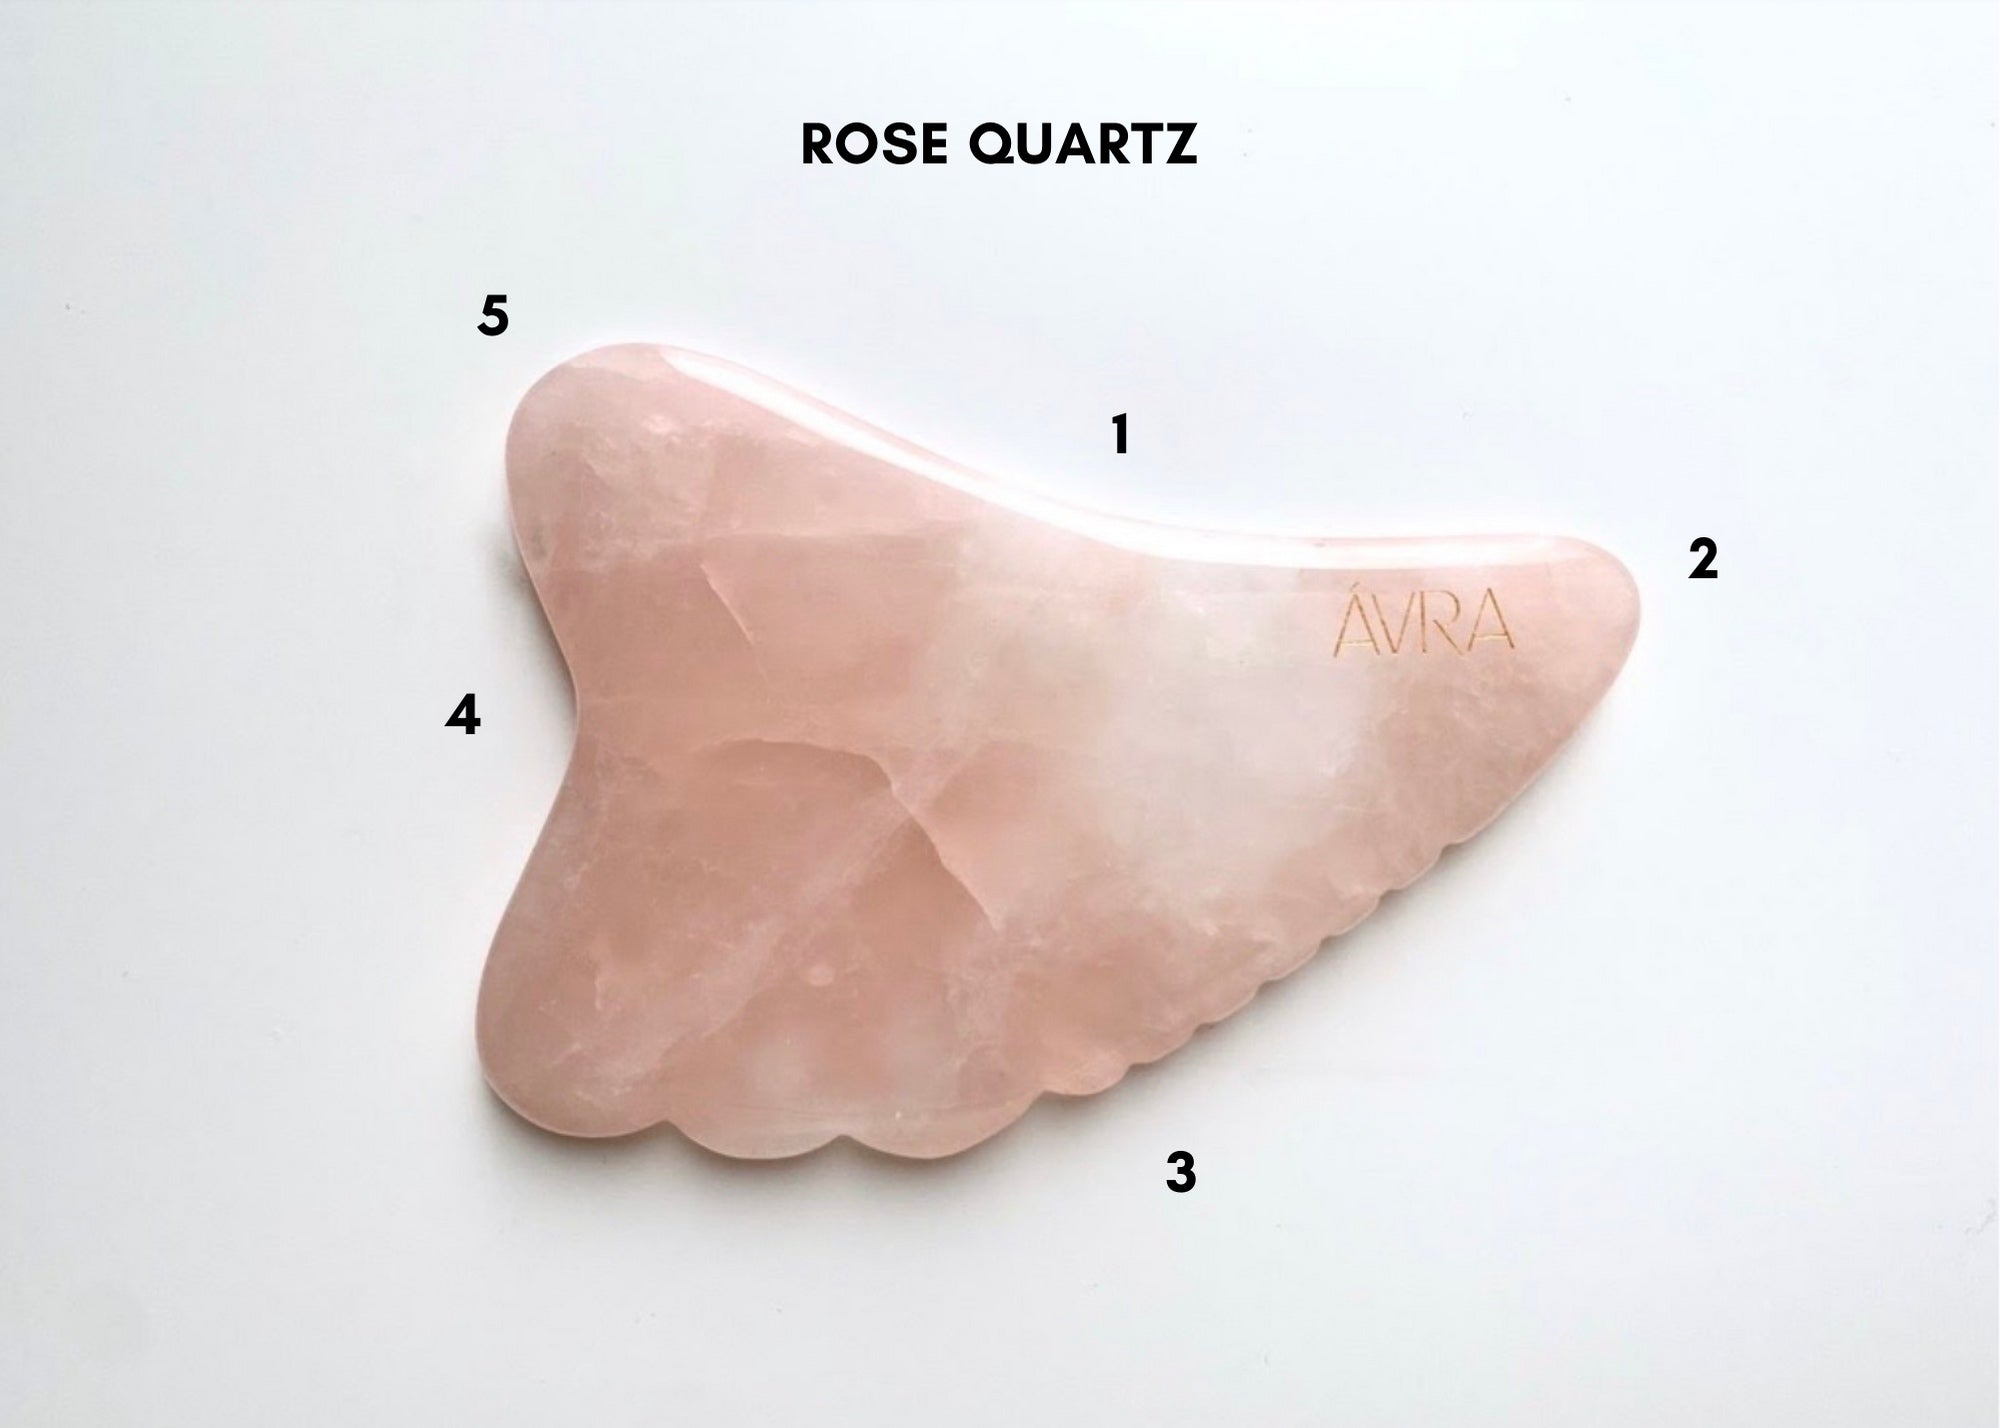 rose quartz gua sha labelled with numbers on each side